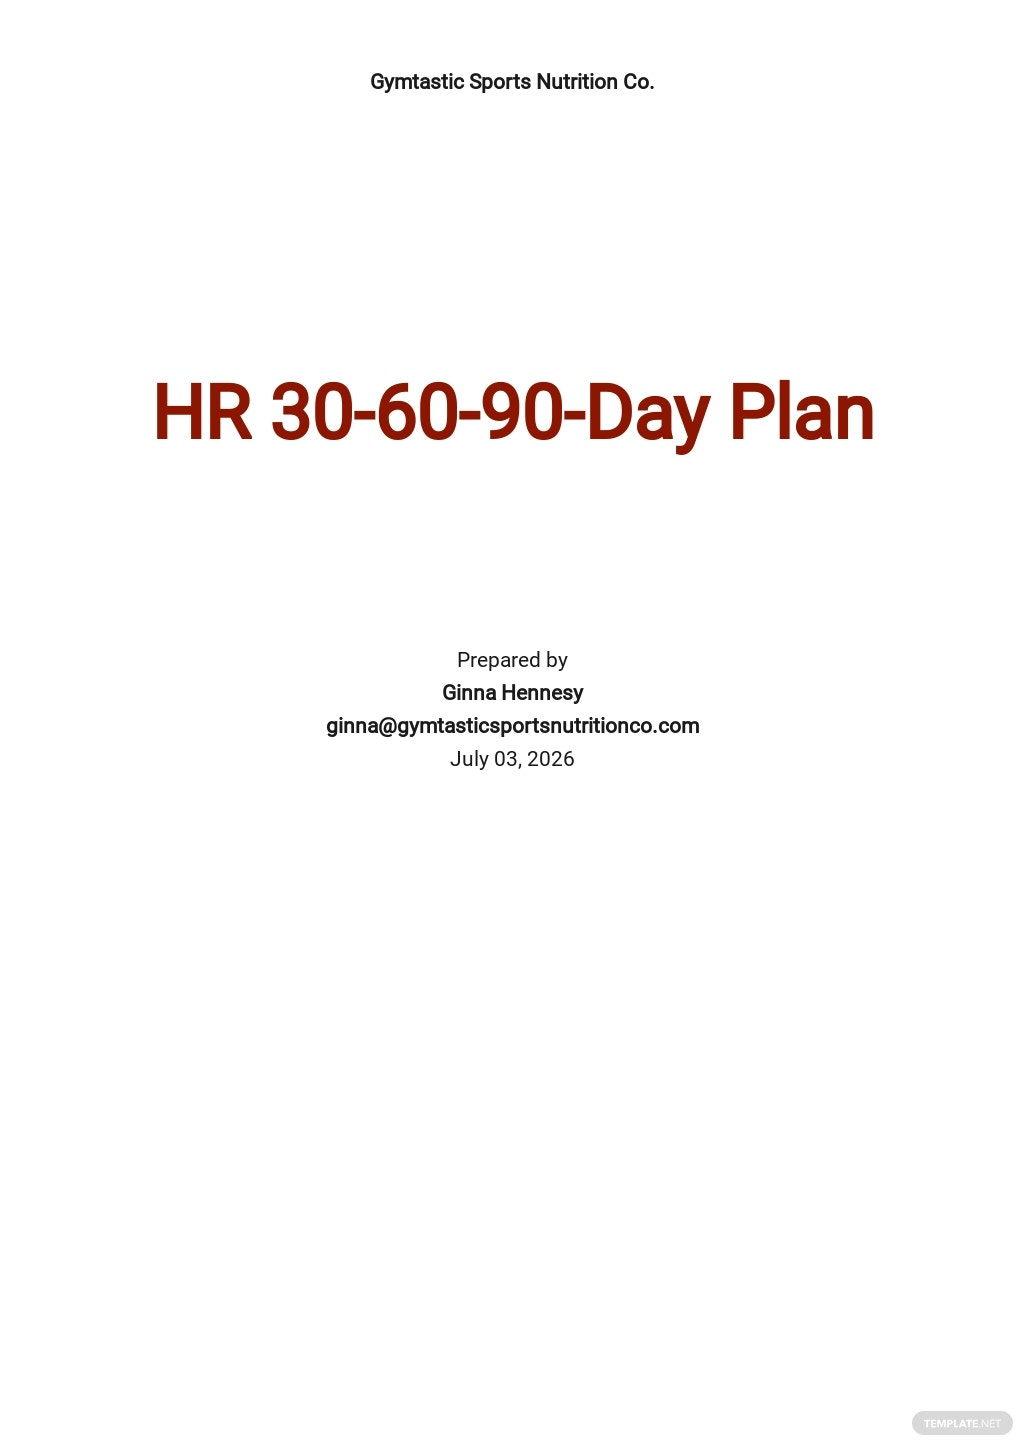 HR 30-60-90-Day Plan Template